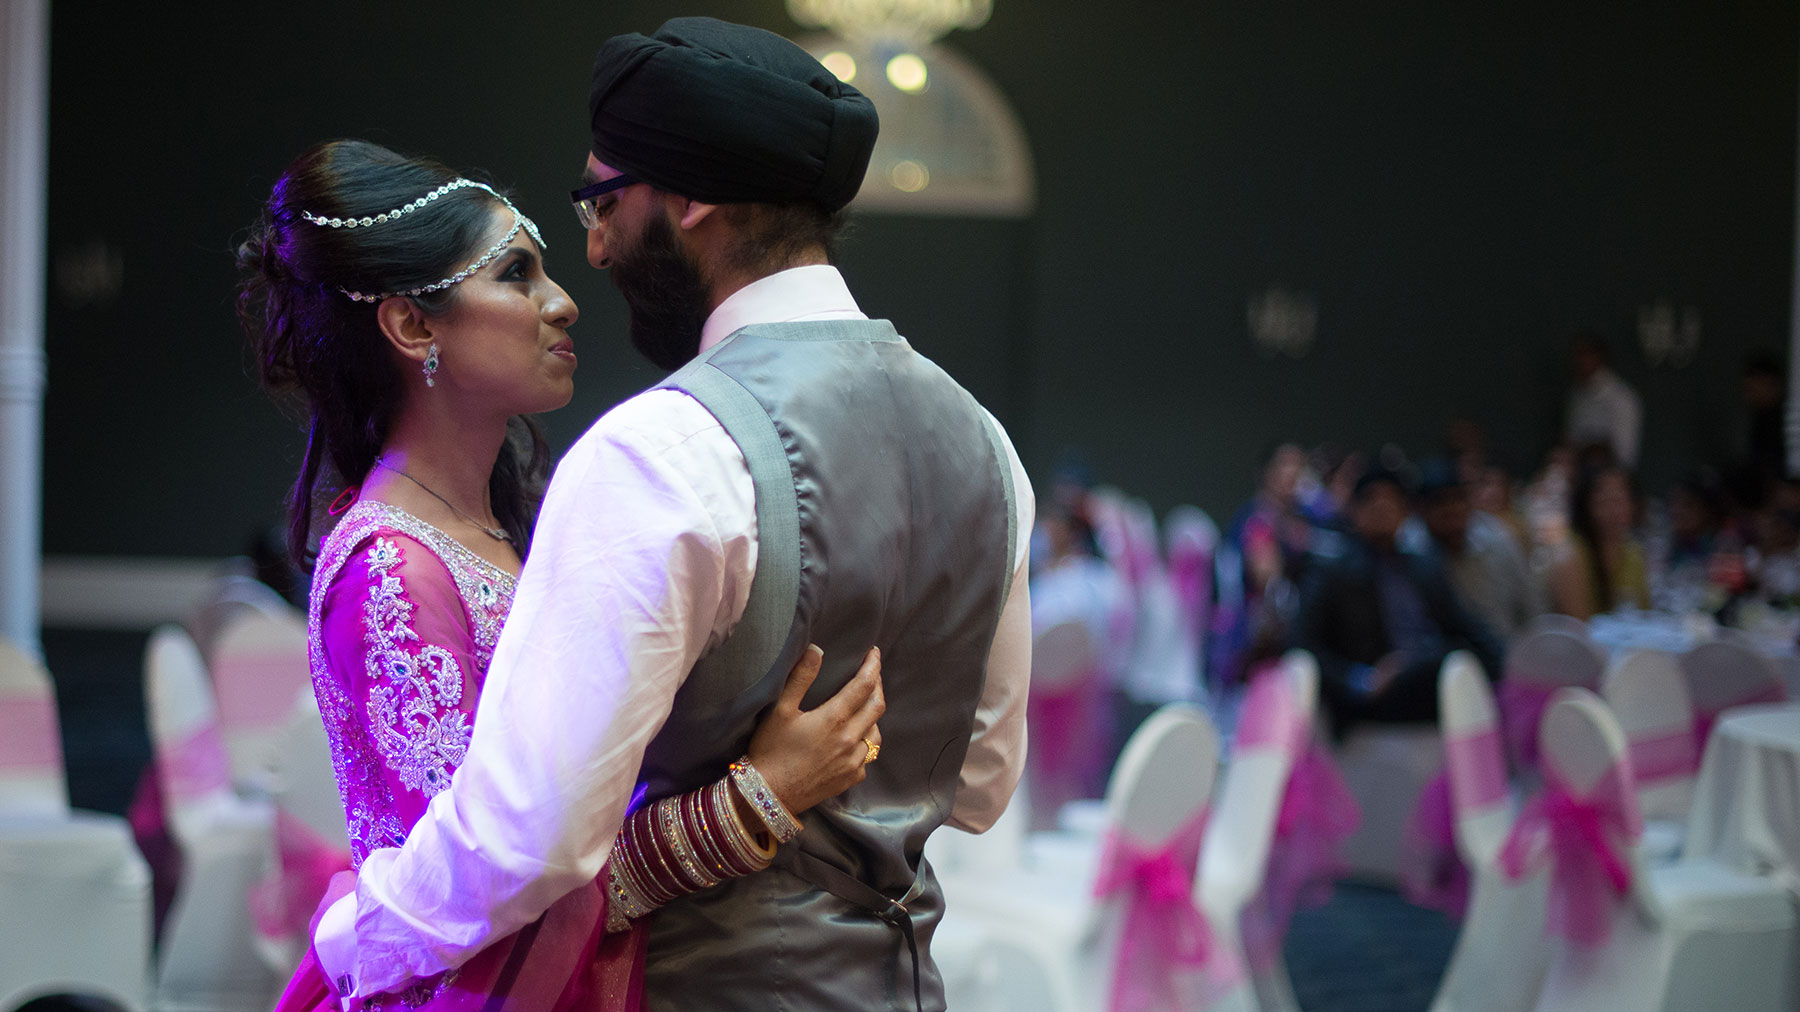 Our Top 10 Indian Wedding Songs for Your First Dance